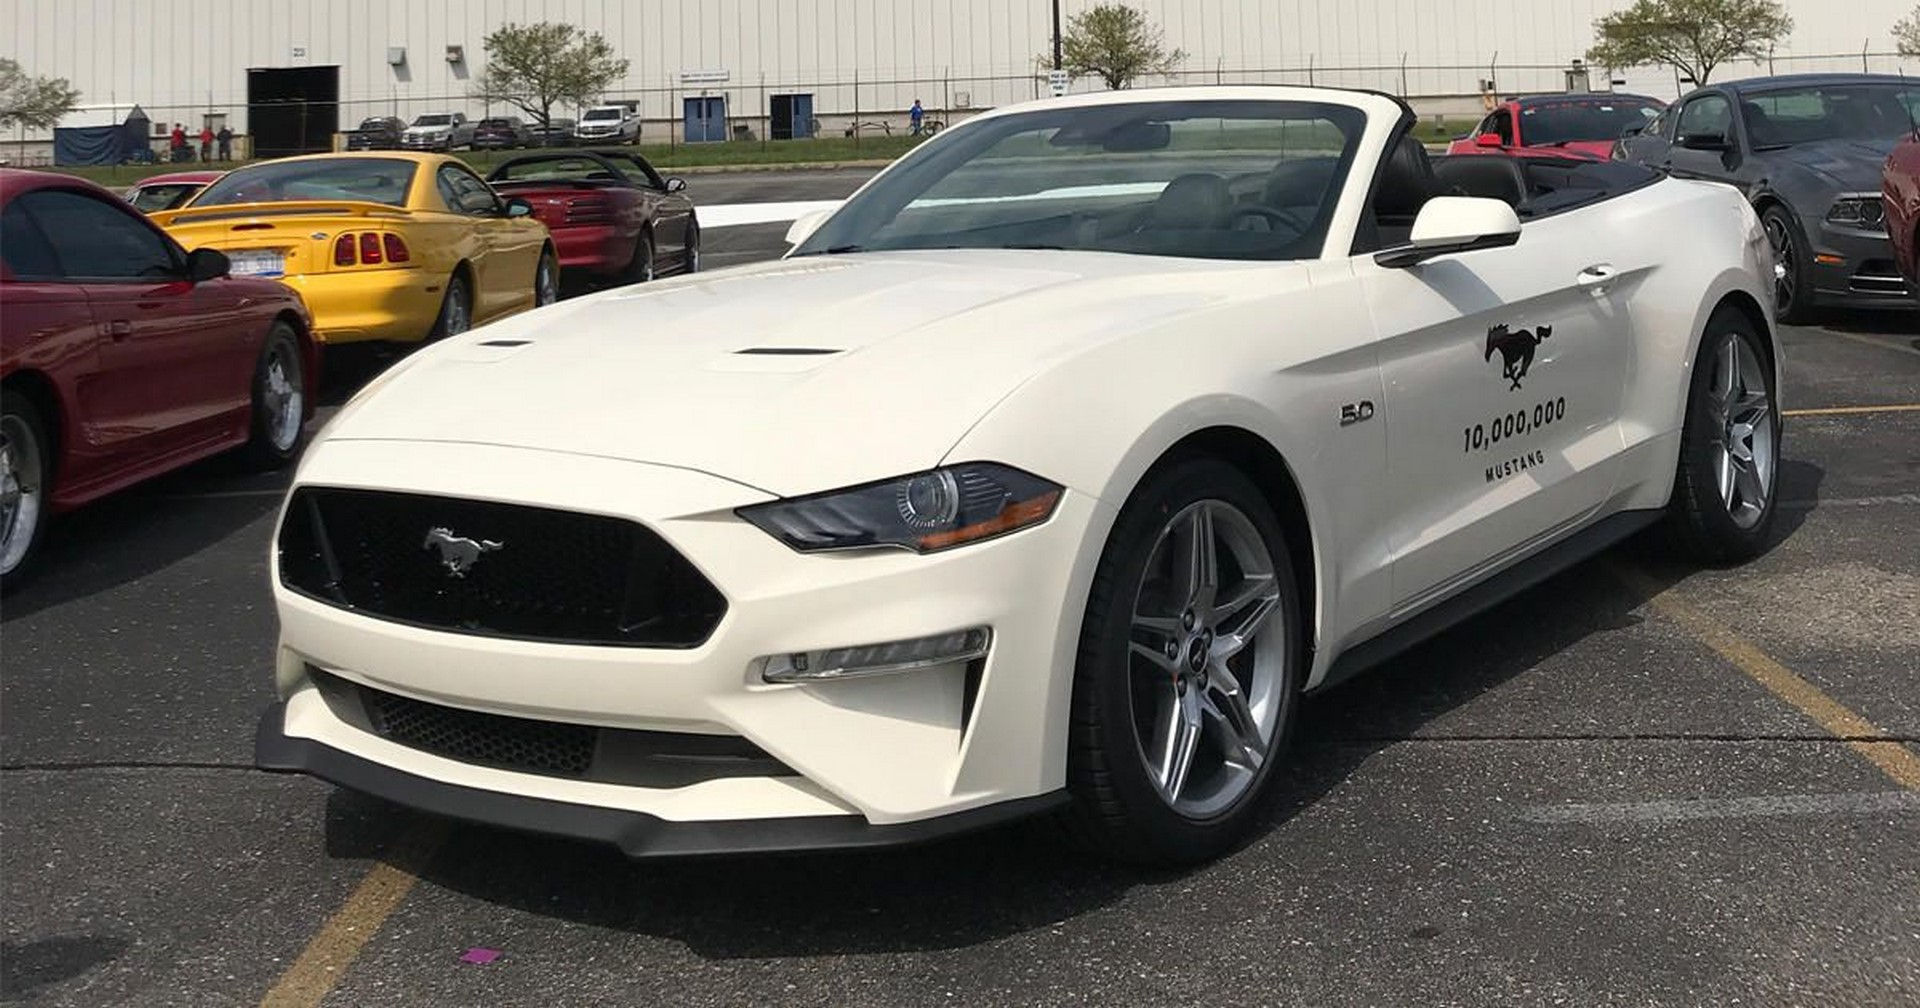 Ford Mustang 10 million (1)